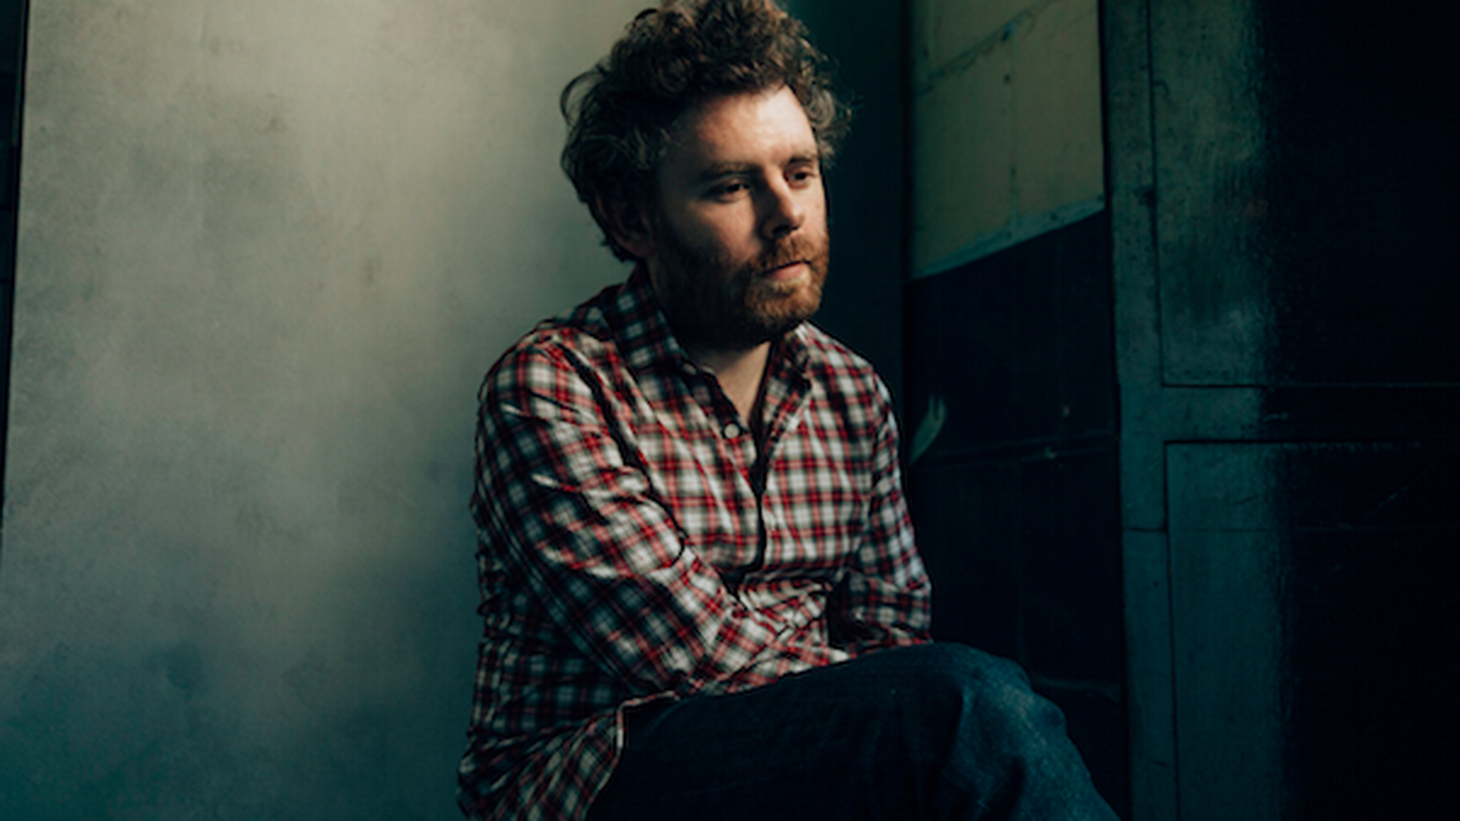 Brooklyn-based composer, pianist, and singer Gabriel Kahane released his debut on Nonesuch Records earlier this year.